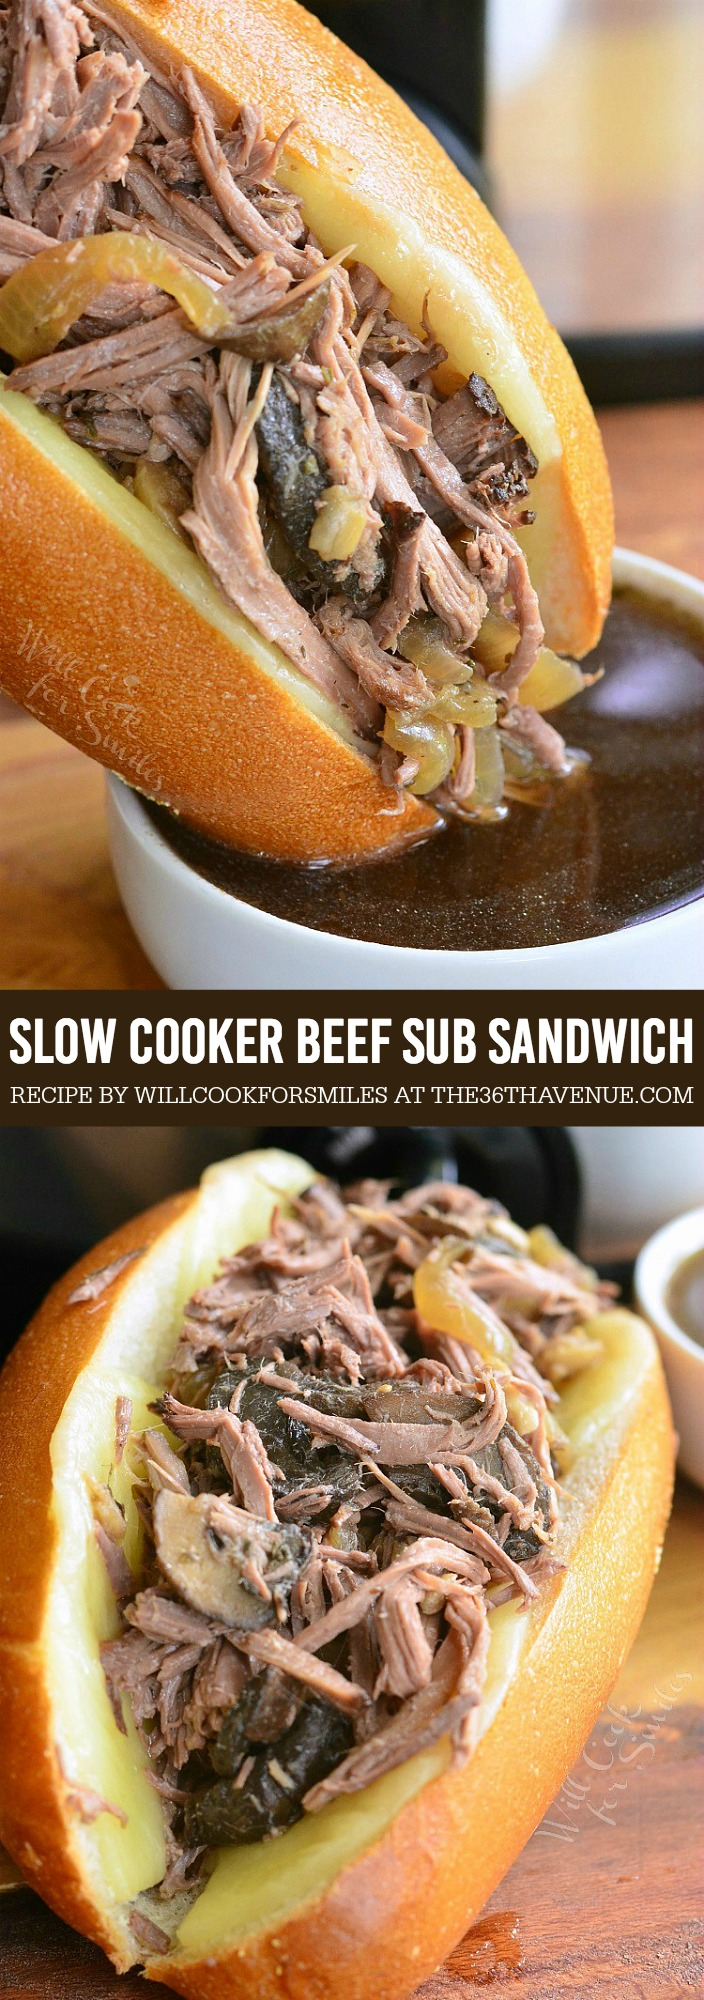 This delicious Slow Cooker Beef Sub Sandwich is made with tender, and flavorful beef made in the Crock Pot. This beef is slow cooked with Italian herbs, mushrooms, and onions. It's perfect as a nice sub sandwich and as a main dish.